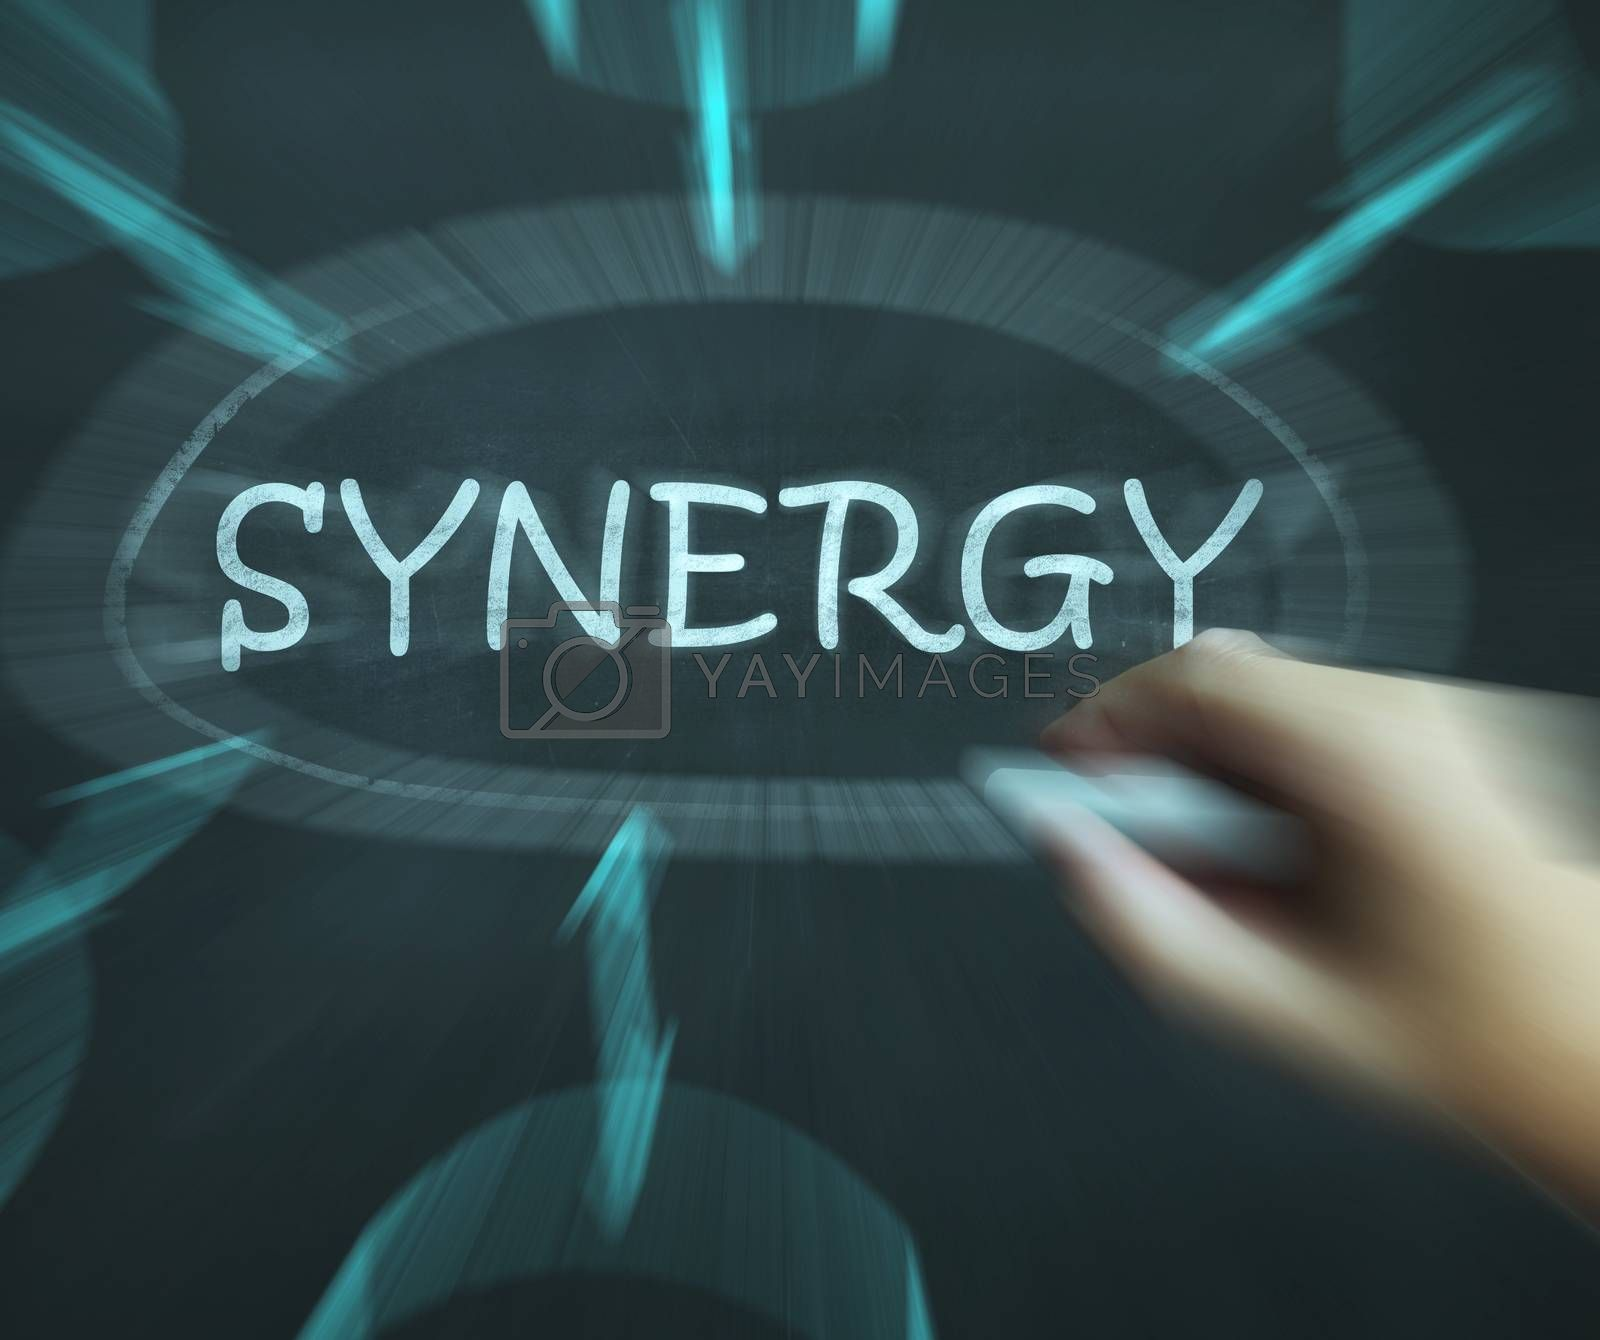 Synergy Diagram Means Joint Effort And Cooperation by stuartmiles